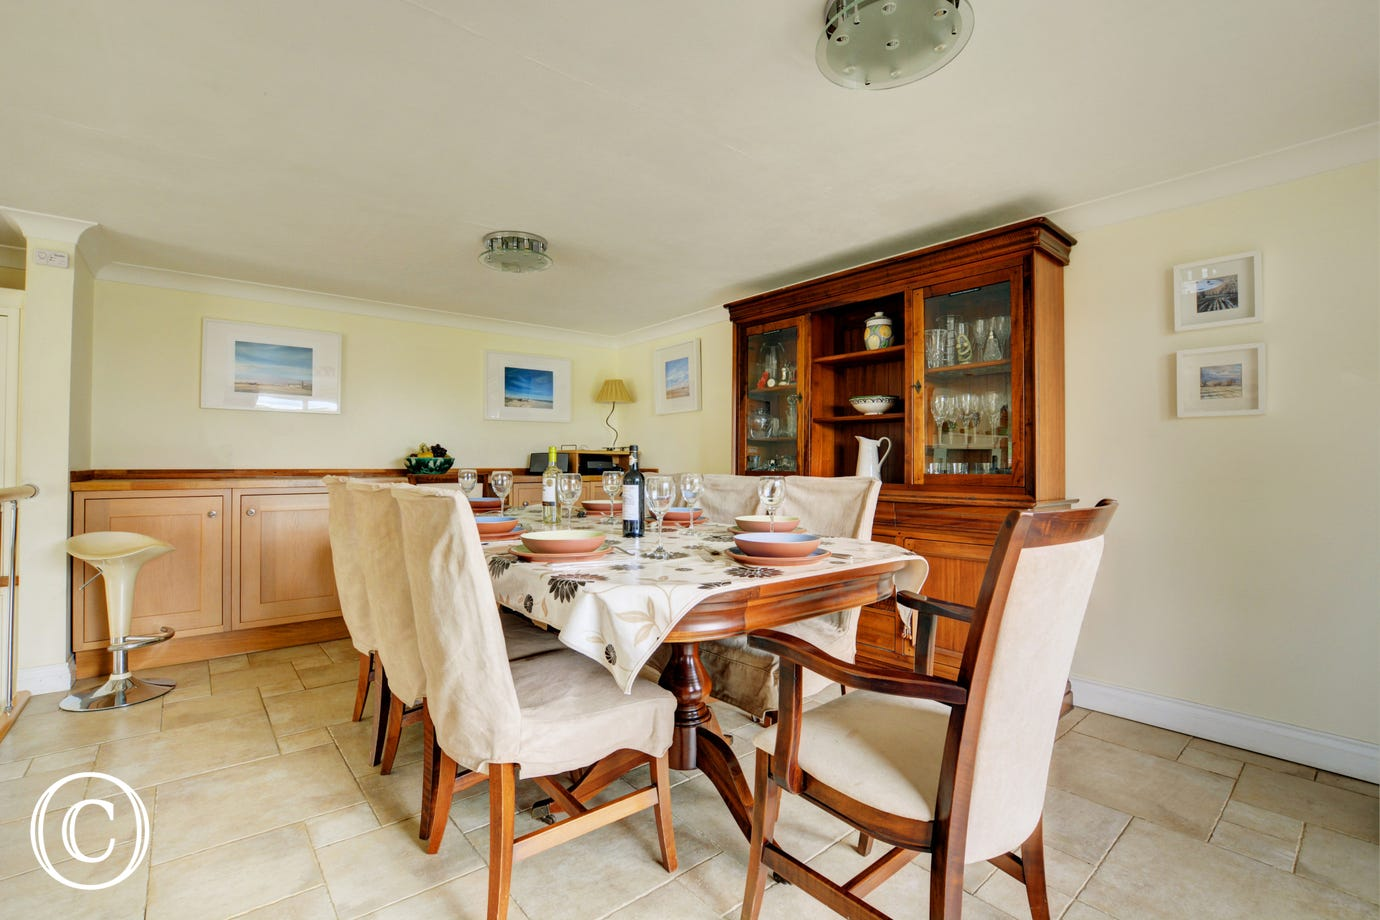 Dining area with table and chairs for family meals